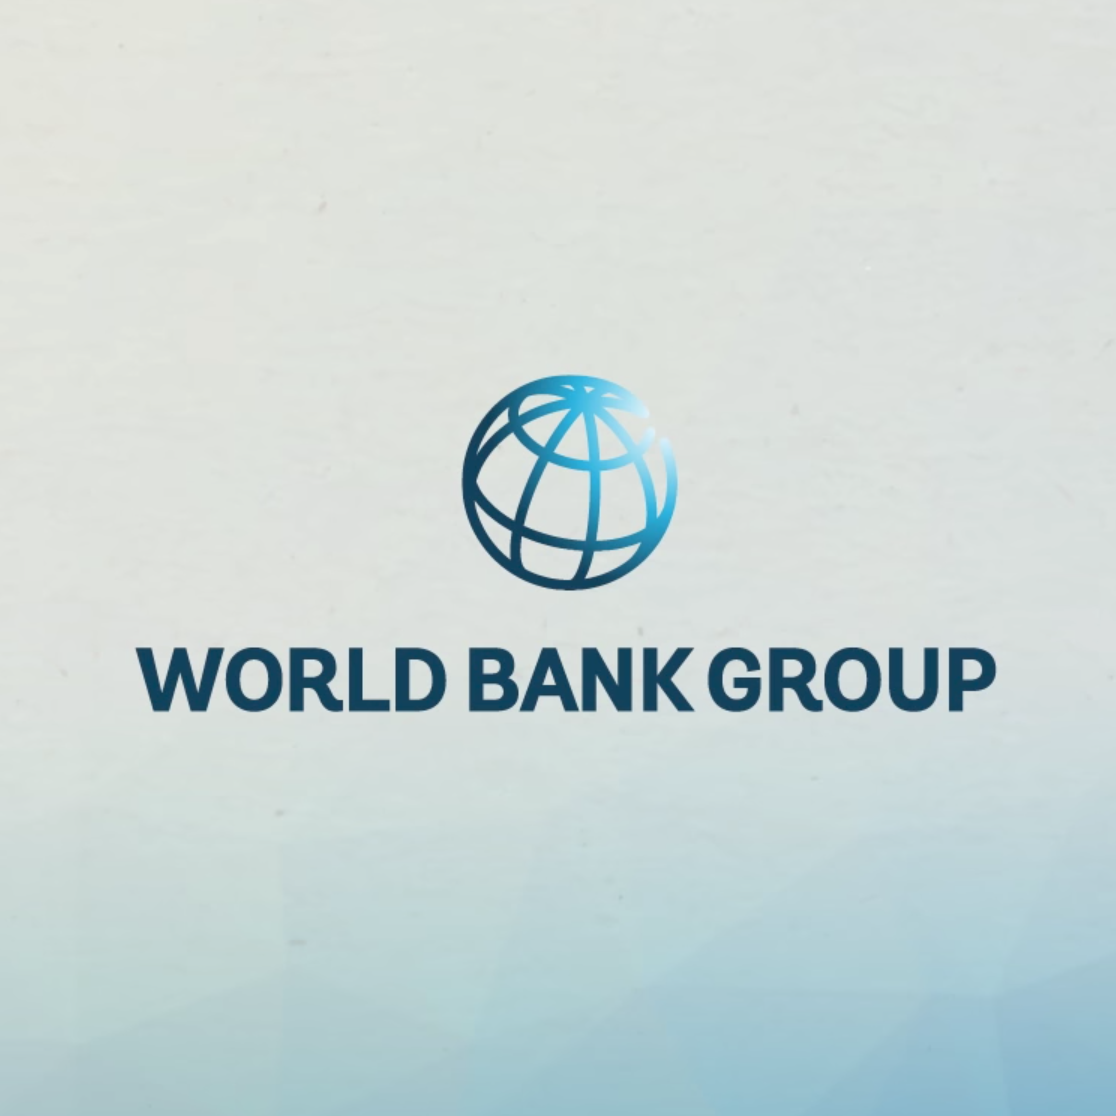 can we really expect a fair resolution from the World Bank?